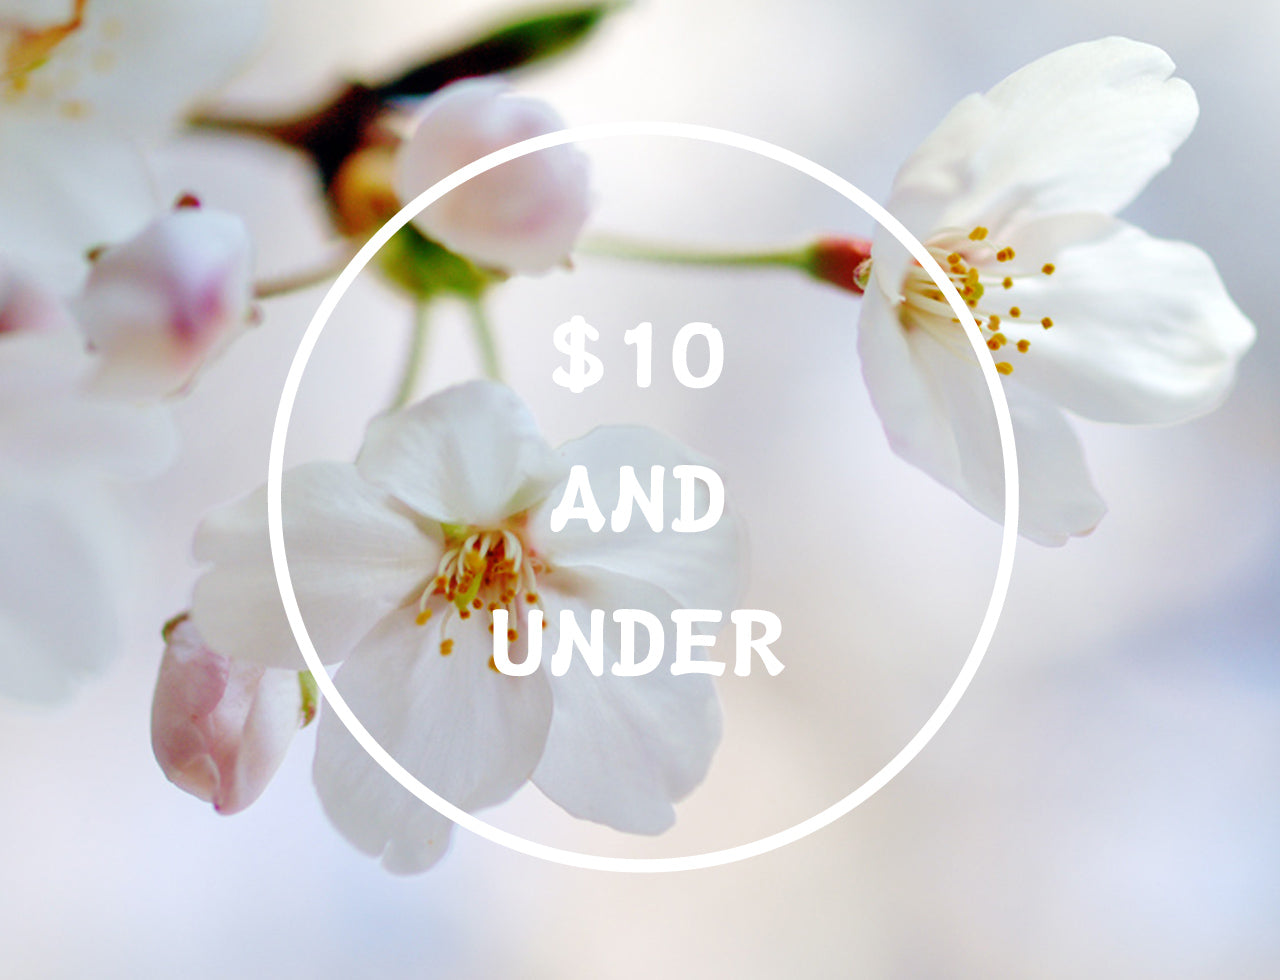 Shop $10 and under